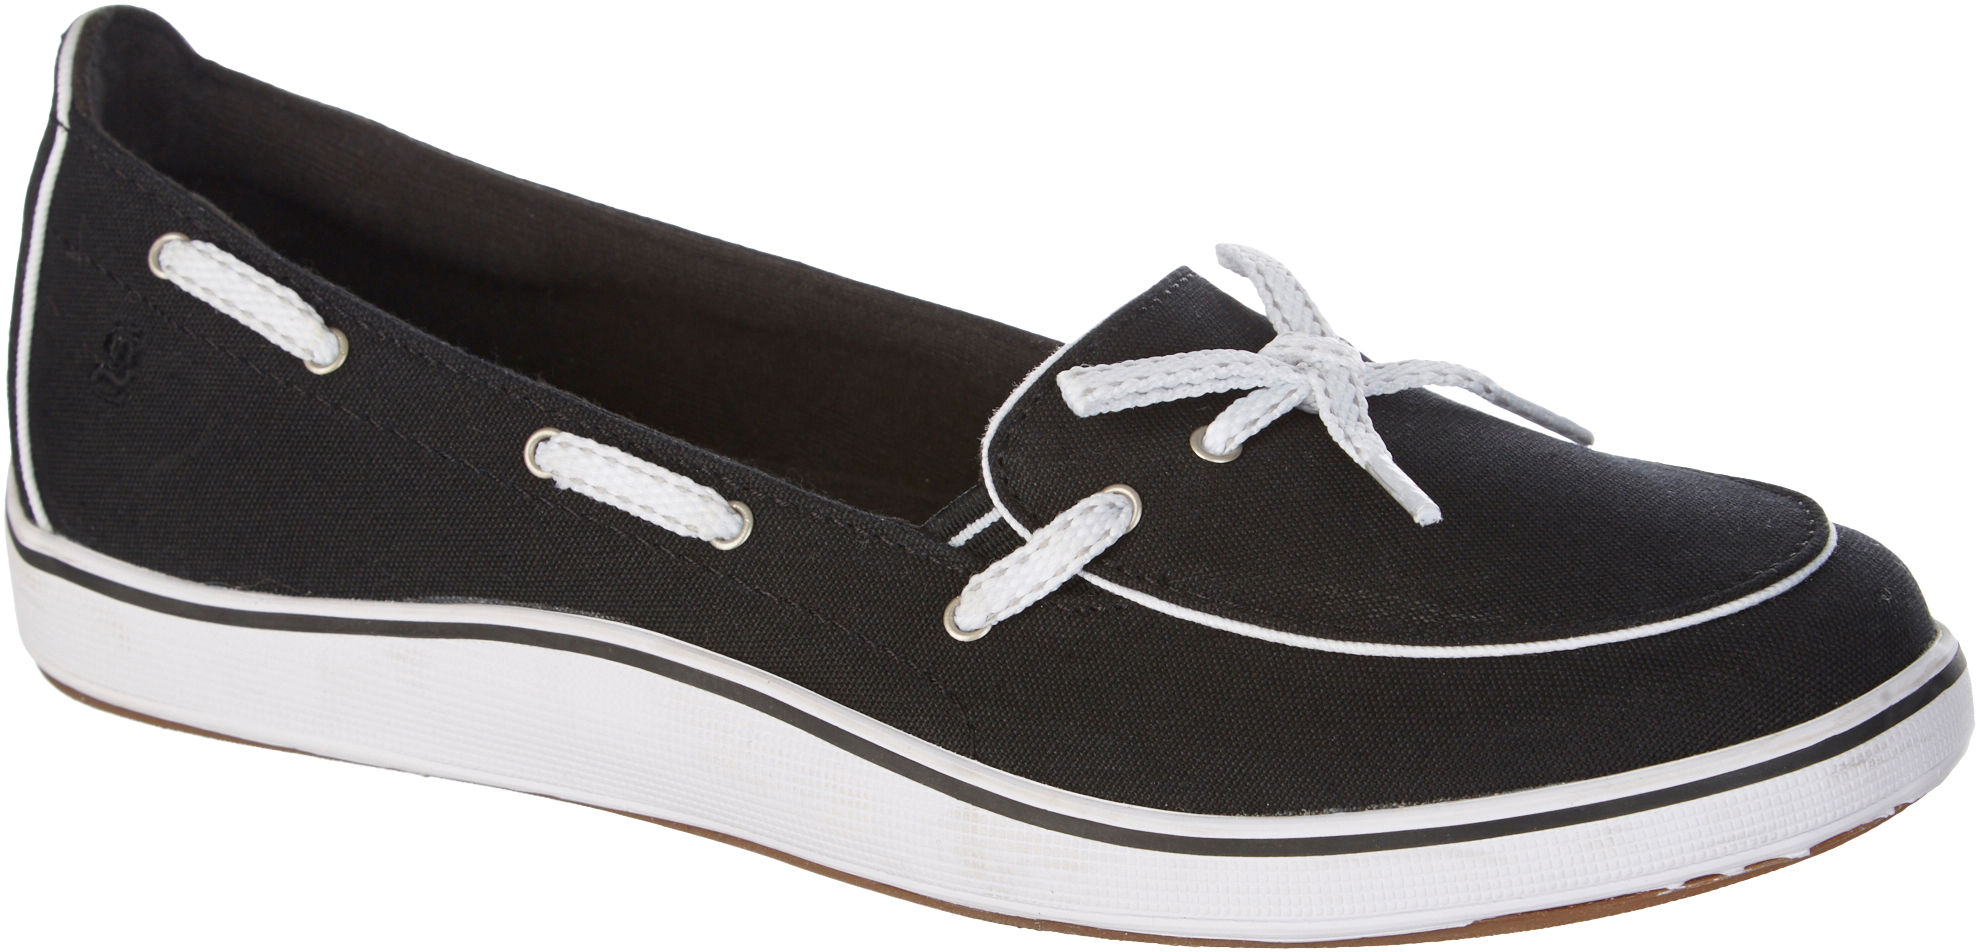 Bealls Womens Casual Canvas Shoes